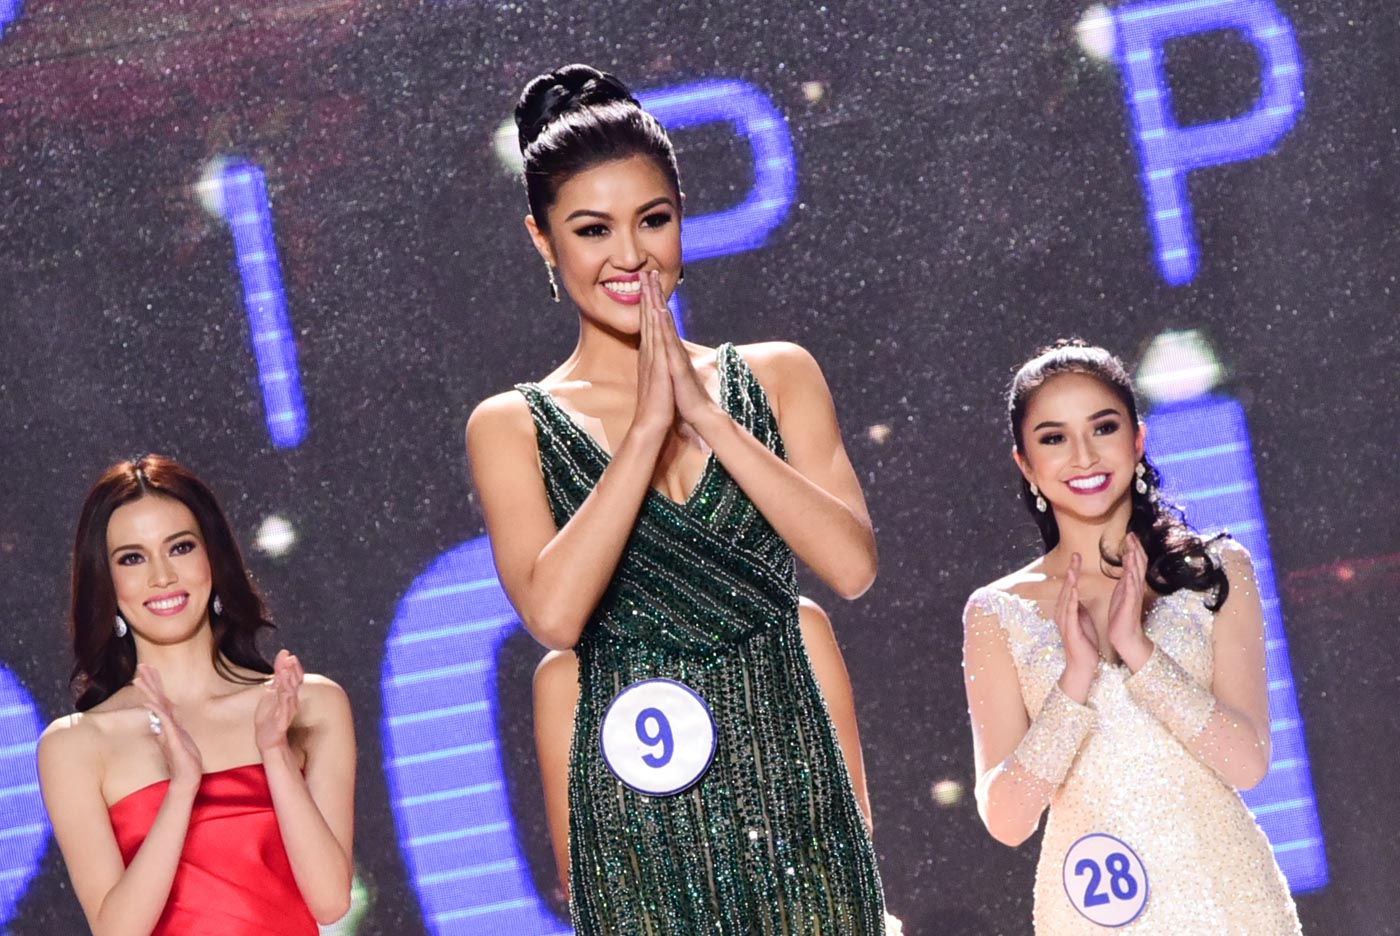 Winwyn Marquez fulfills dream of becoming a beauty queen